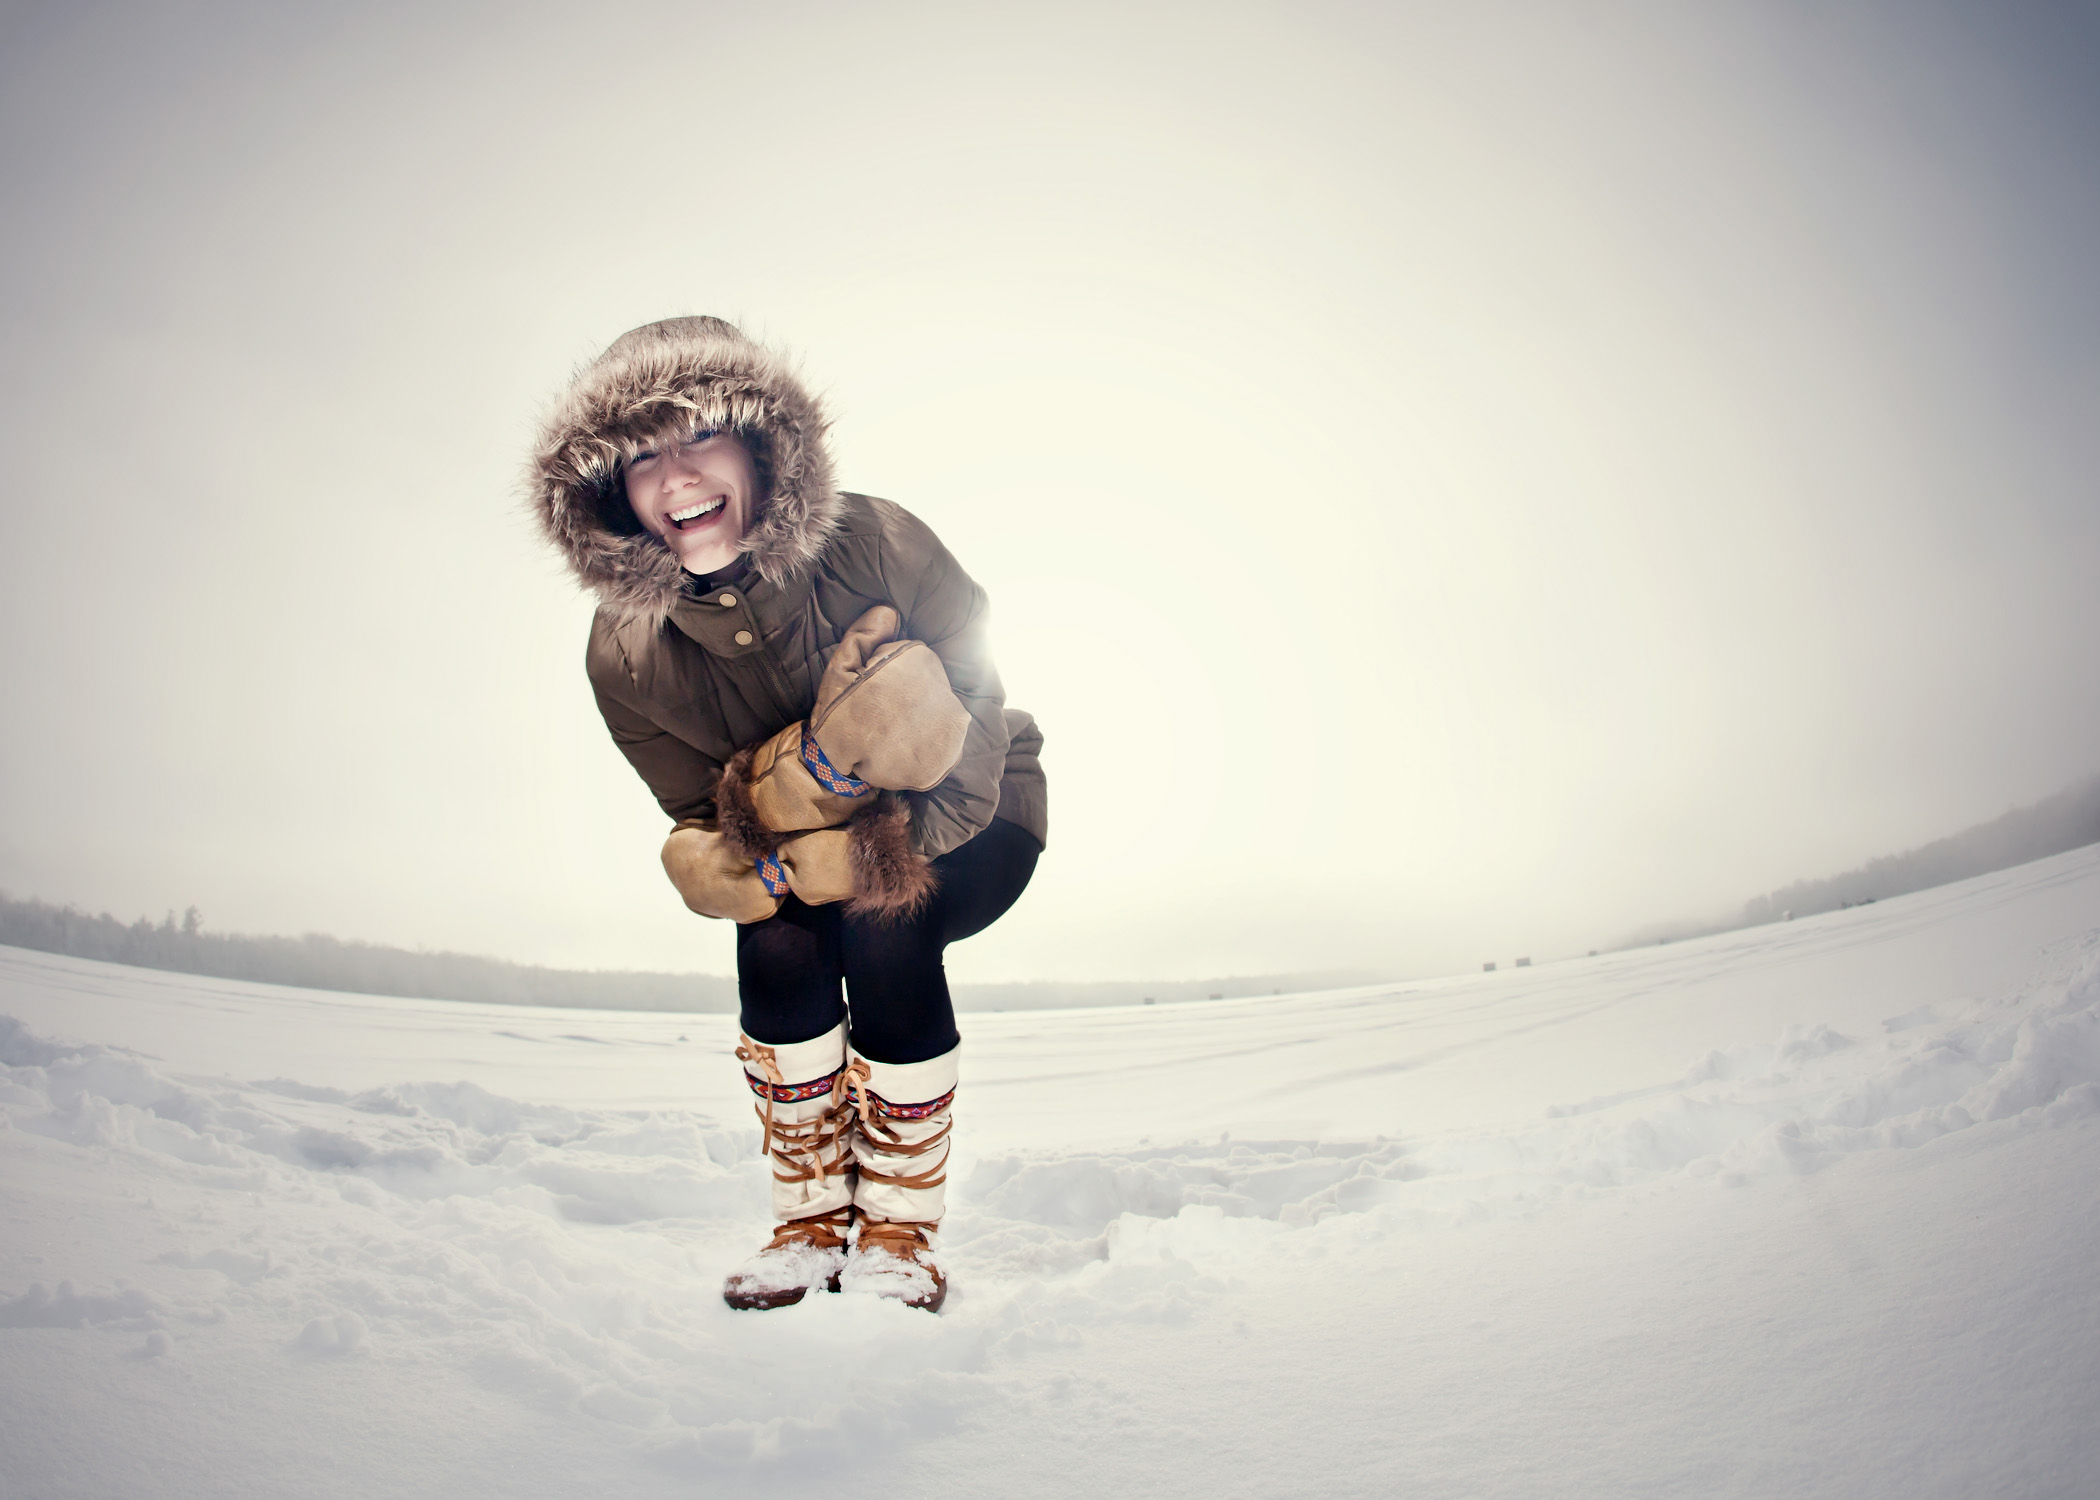 lyndsey johnson laughing having a great time in her Steger Mukluks